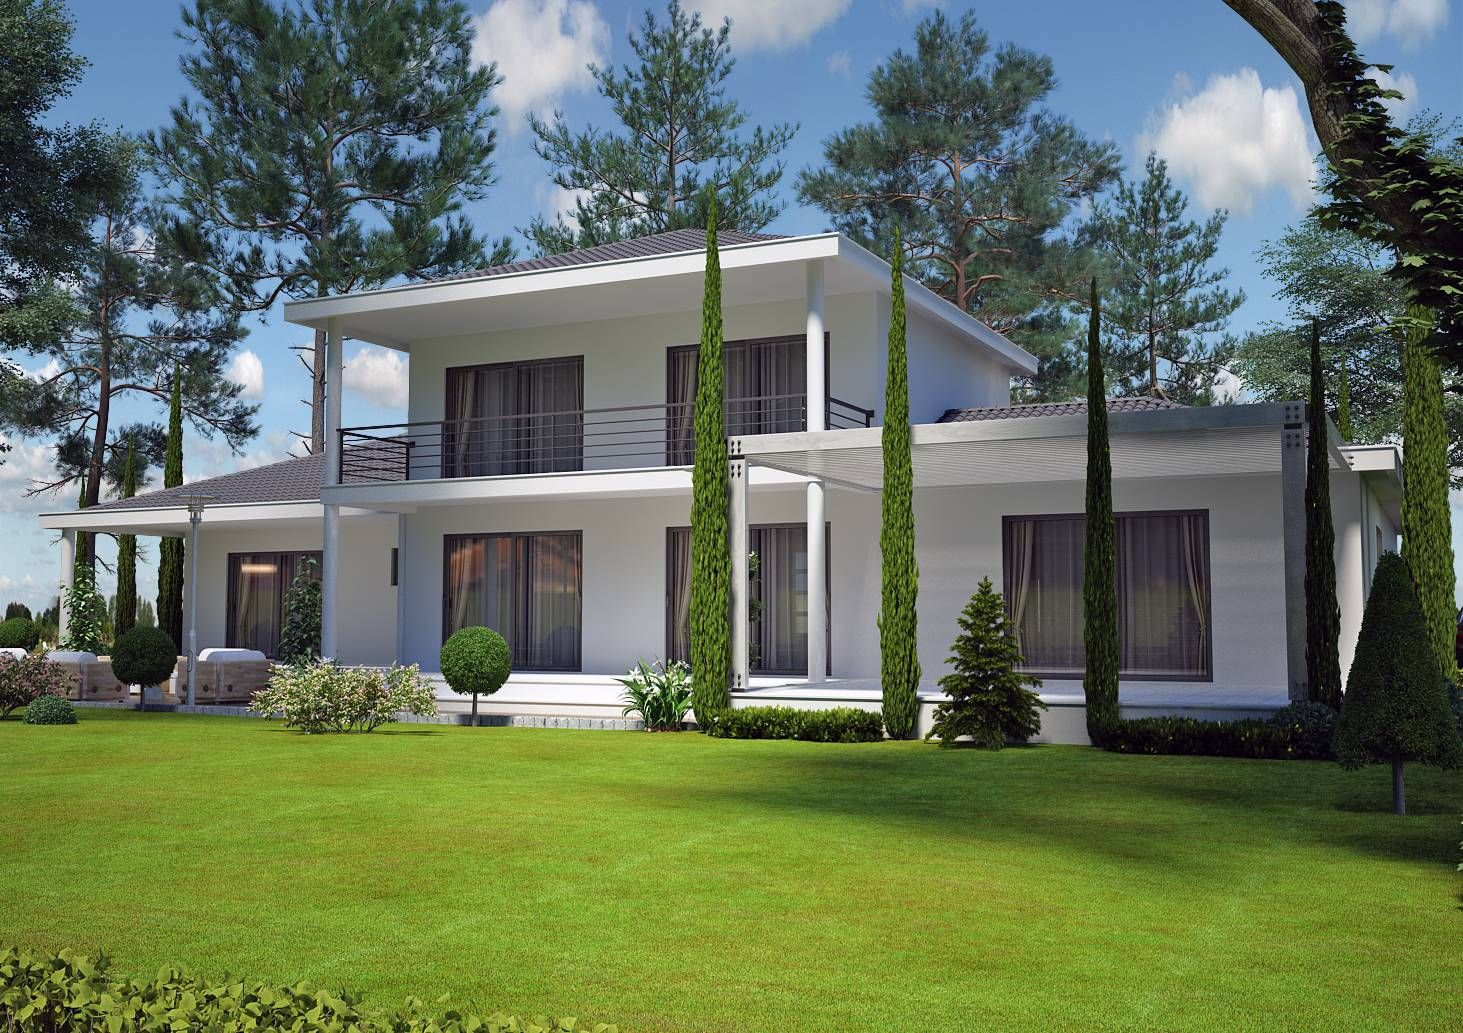 Villa contemporaine 150 m2 etage mod le pinede salon for Modele de maison a etage